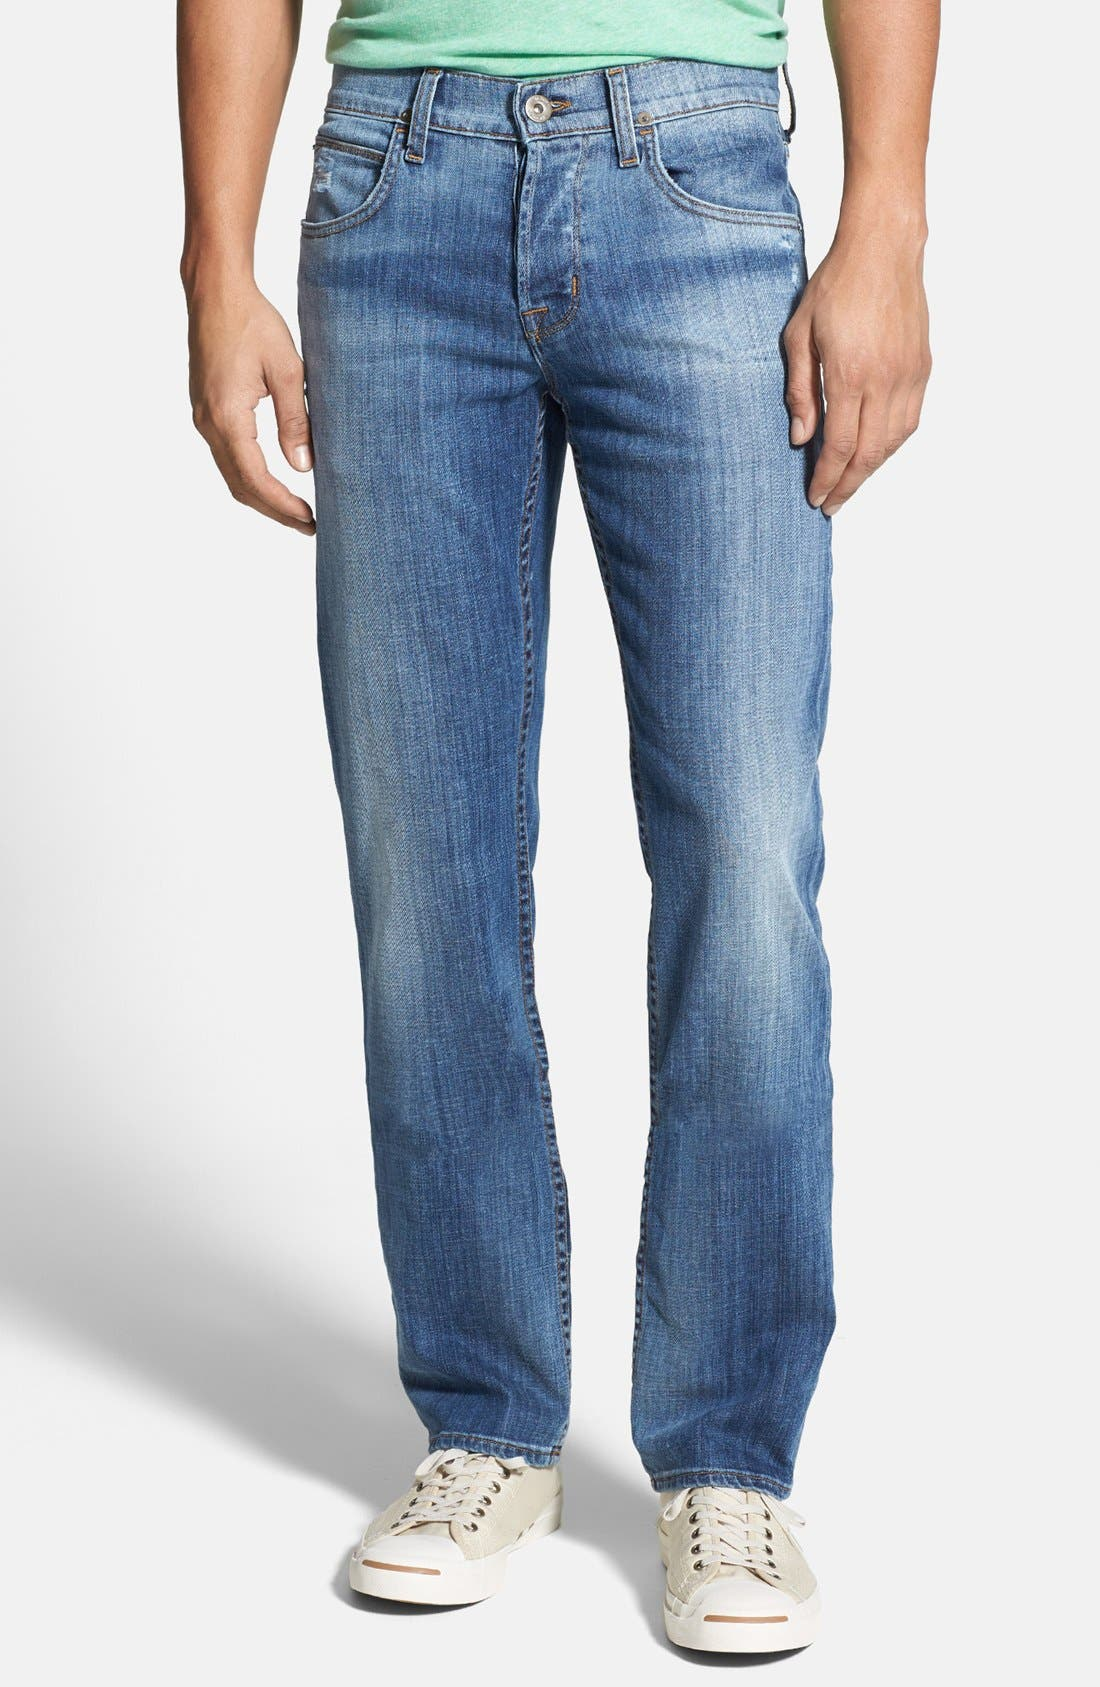 Alternate Image 1 Selected - Hudson Jeans 'Byron' Straight Leg Jeans (Highway)